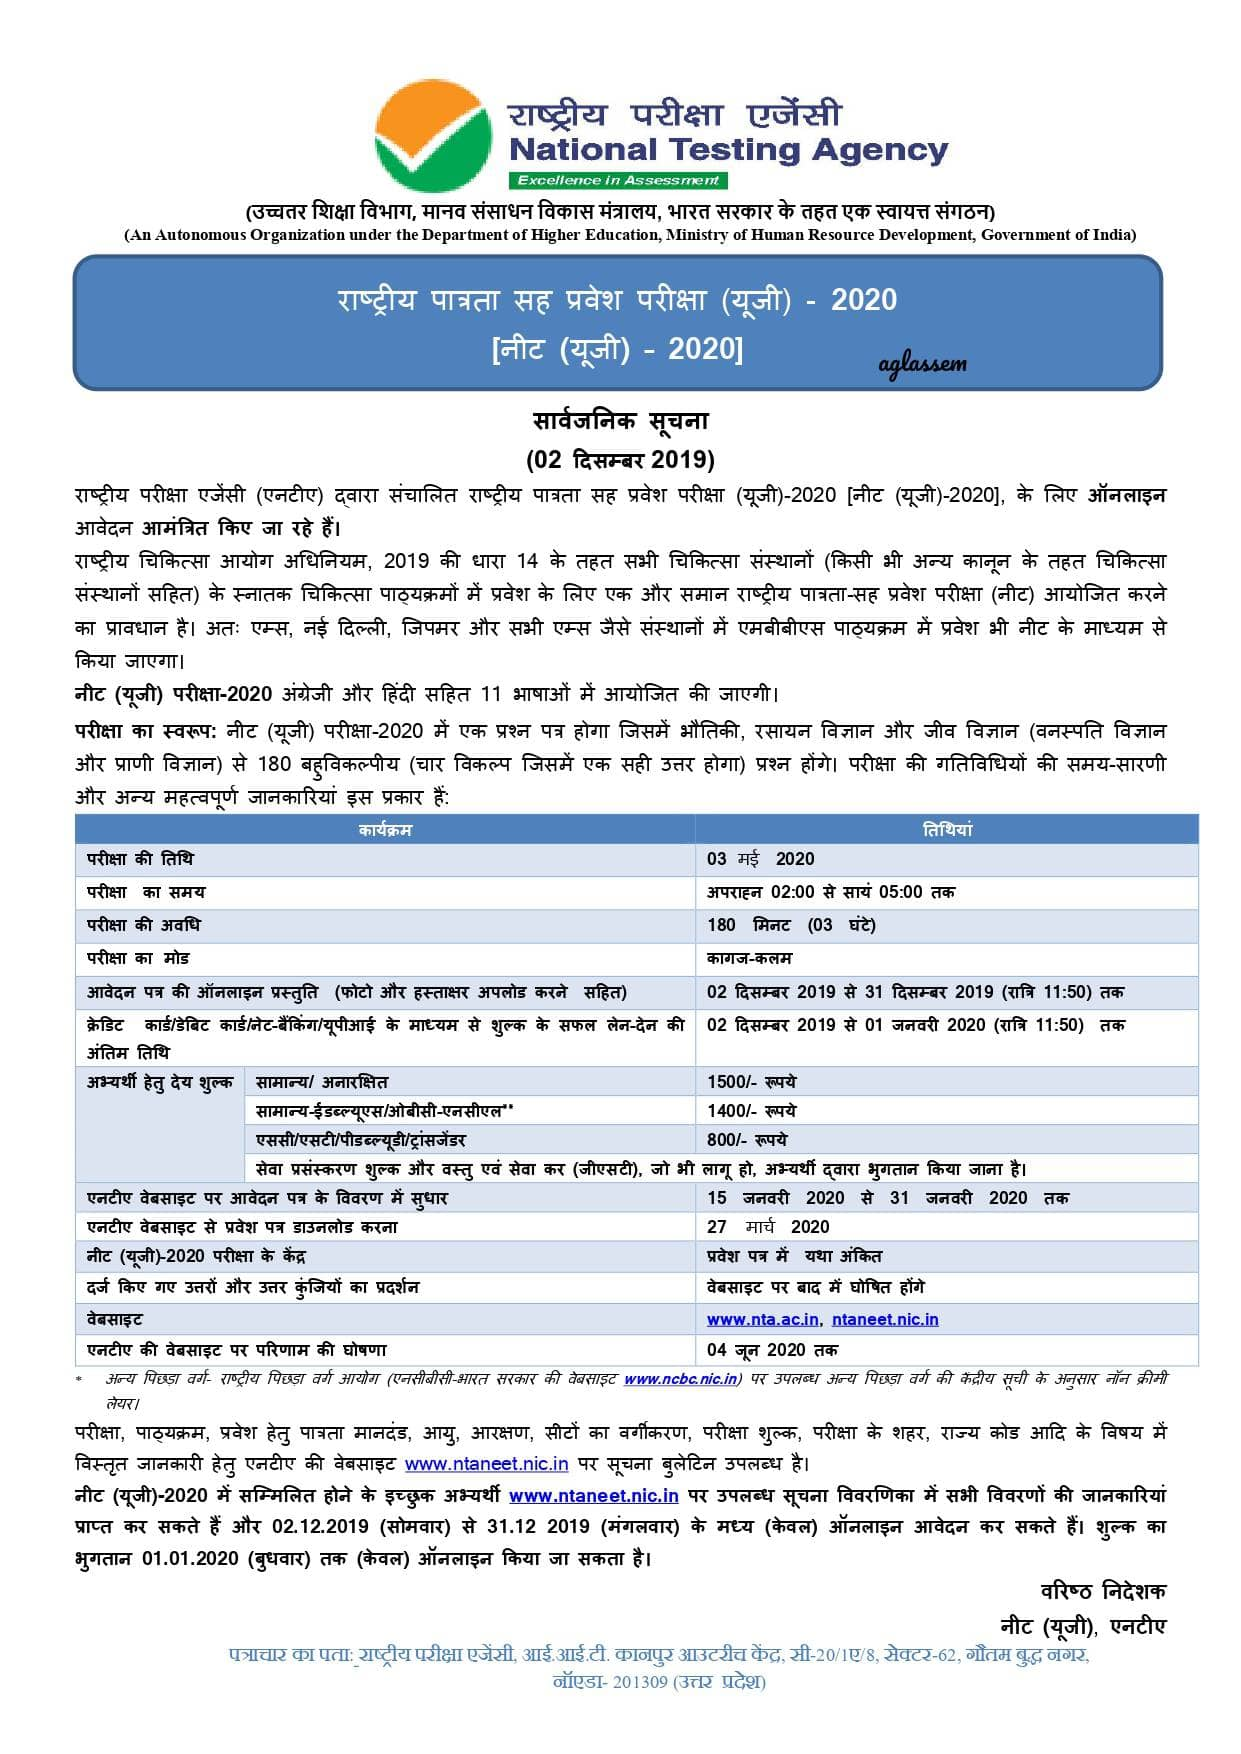 NEET 2020 Application Form releasing today at 4 pm; Check notification and fees